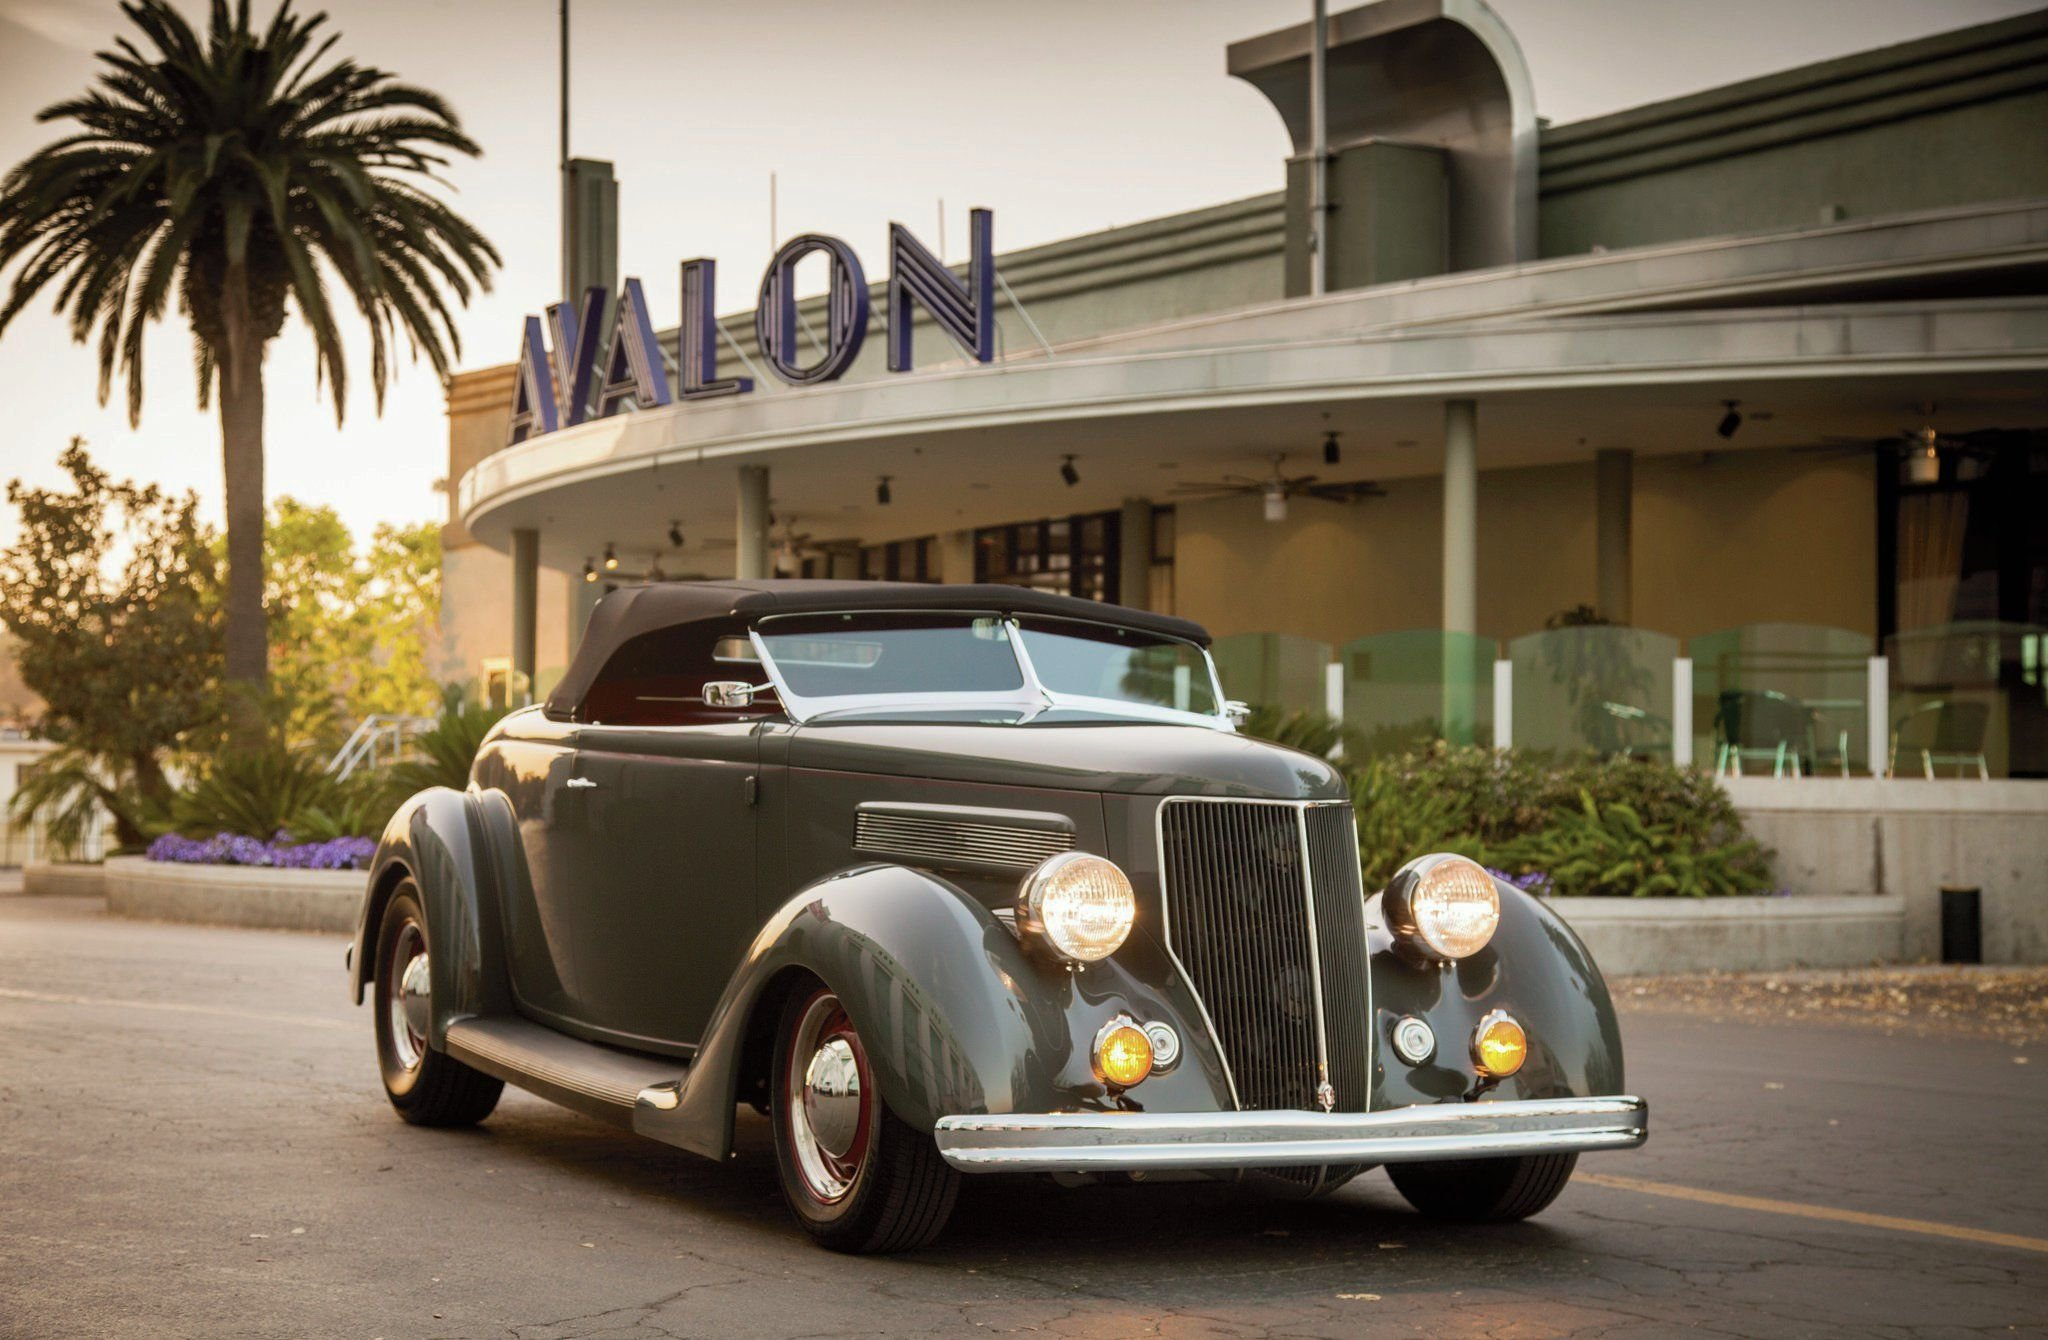 1936 Ford Deluxe Roadster-01 wallpaper